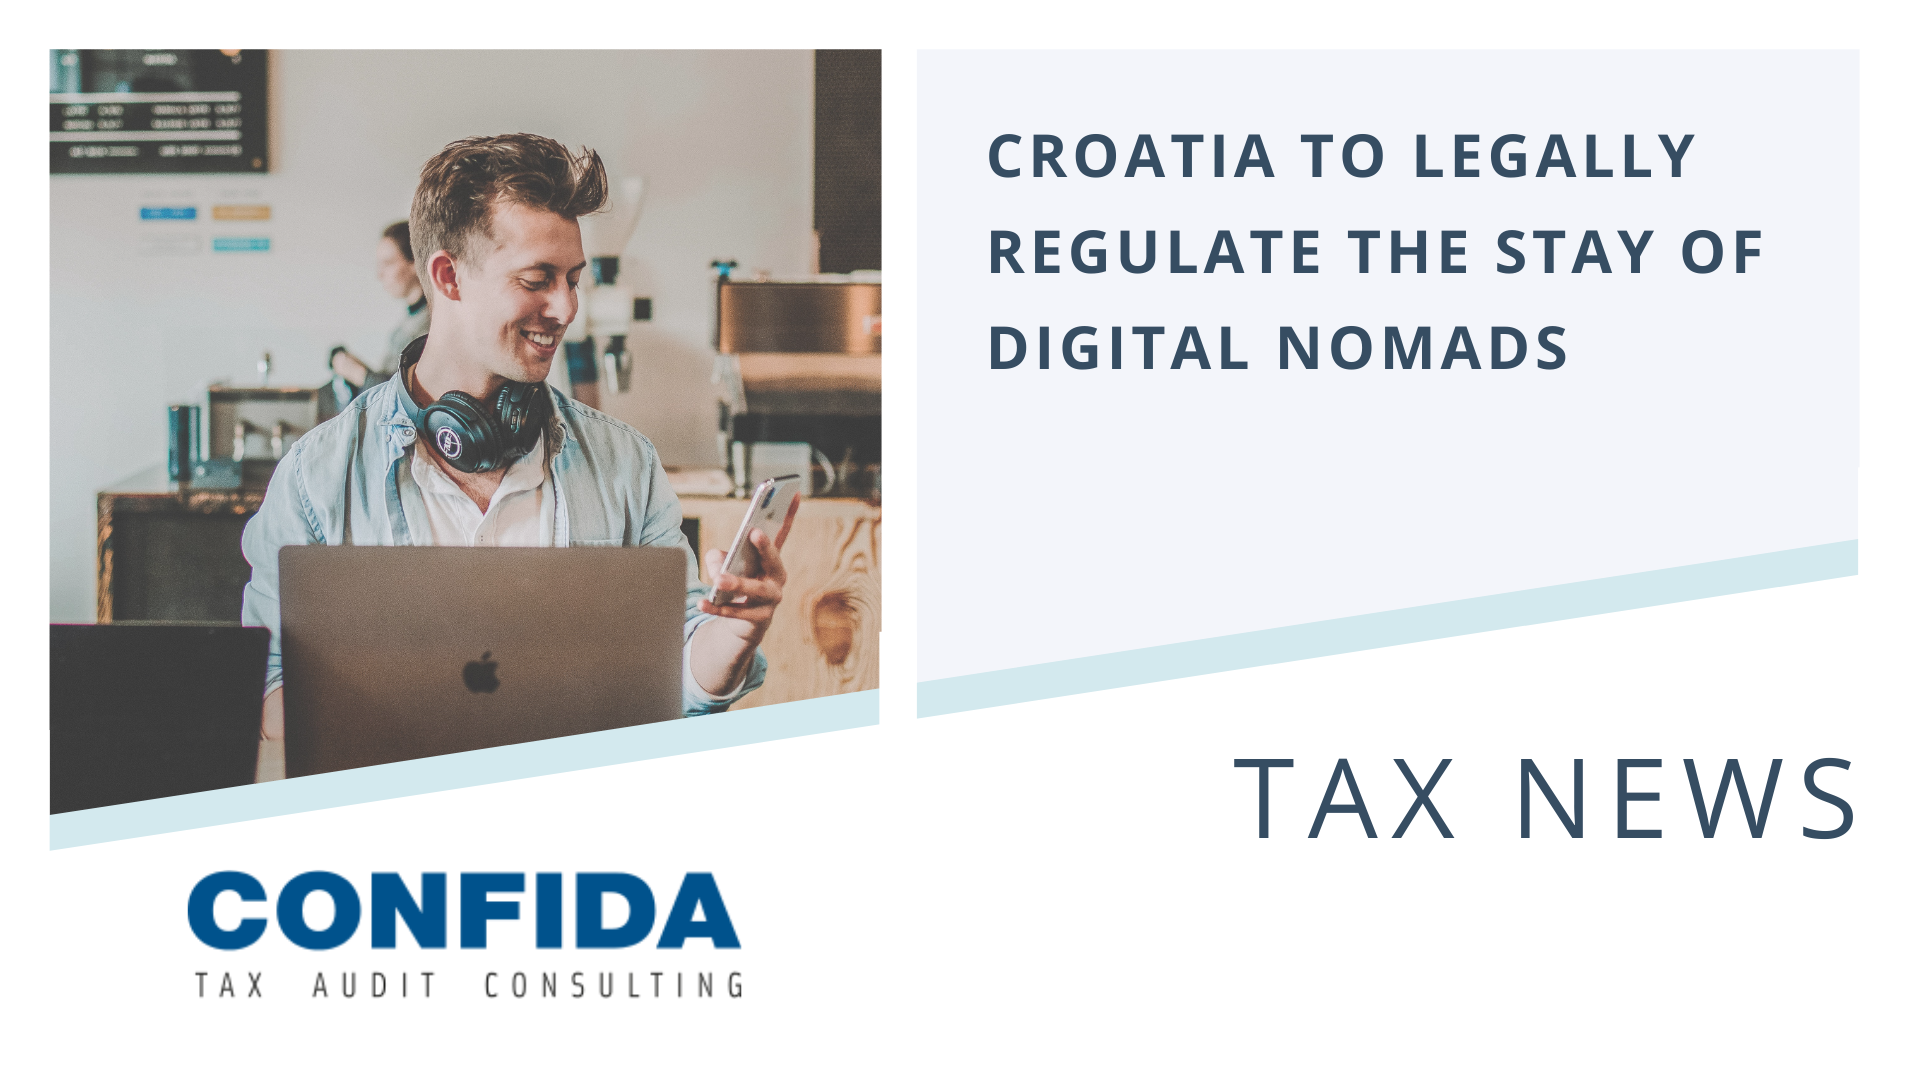 Croatia to Legally Regulate the Stay of Digital Nomads